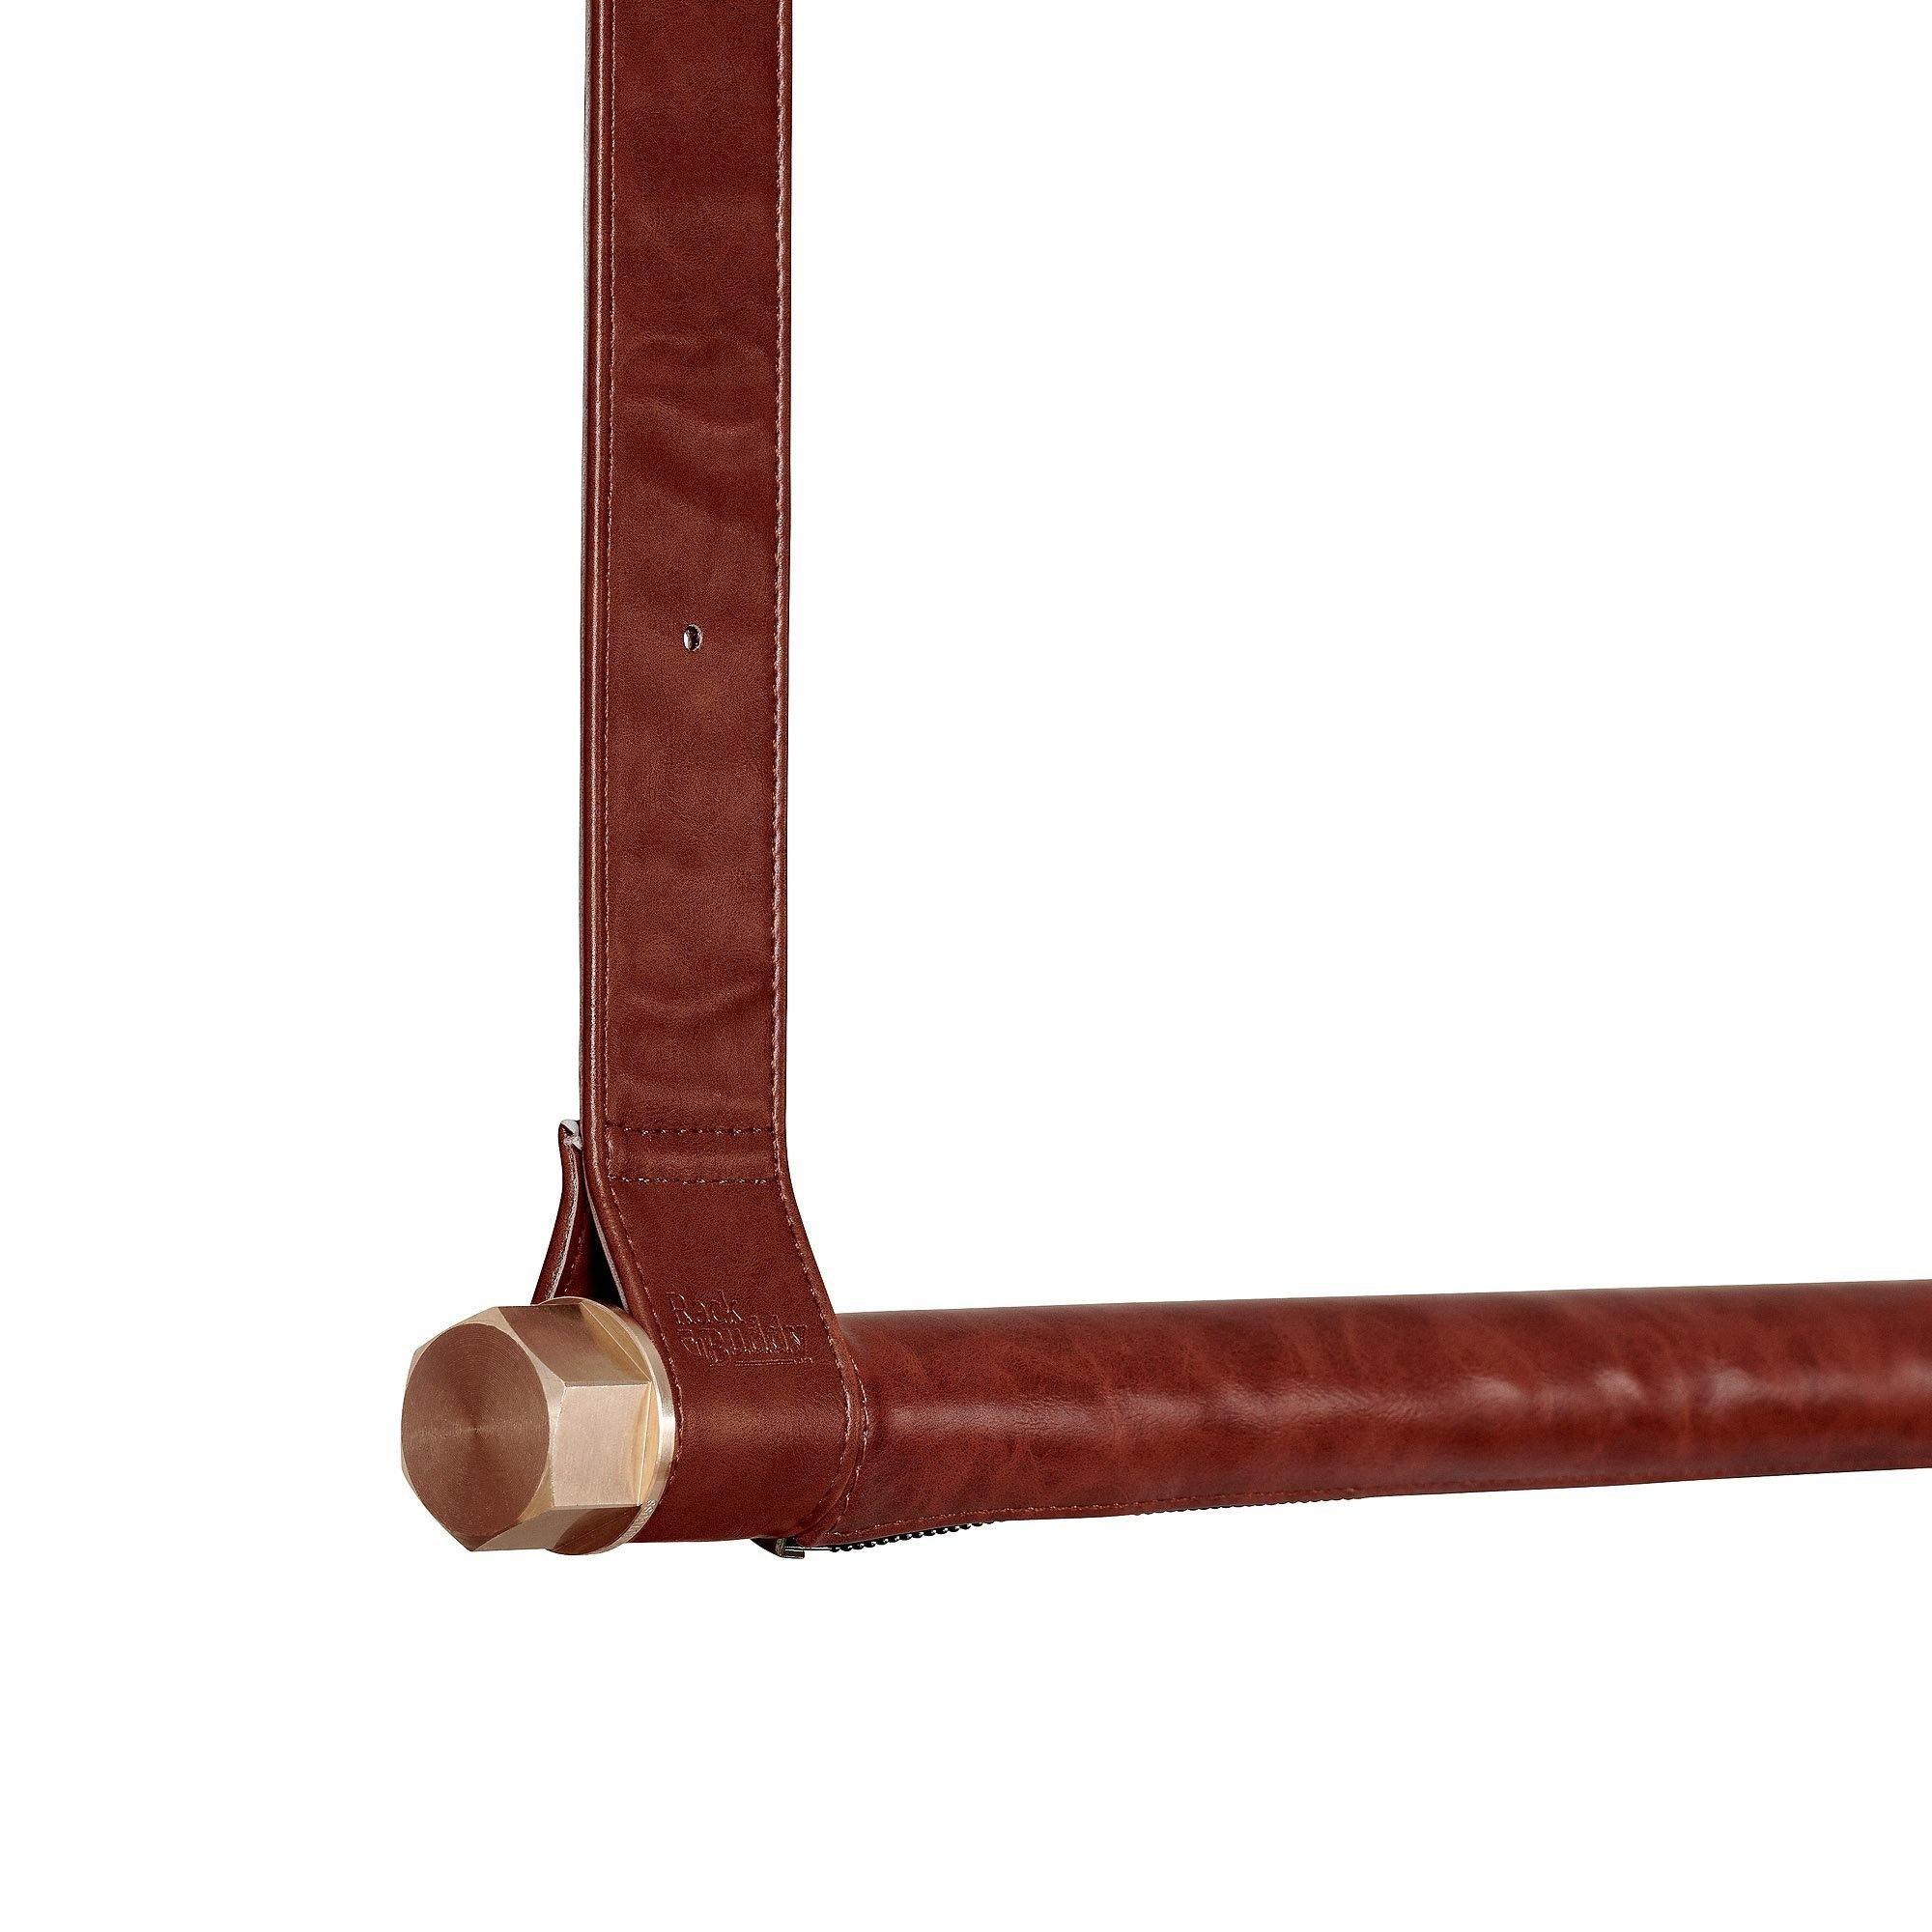 RackBuddy Leatherish - Dark brown leather & hanging strips covered with dark brown